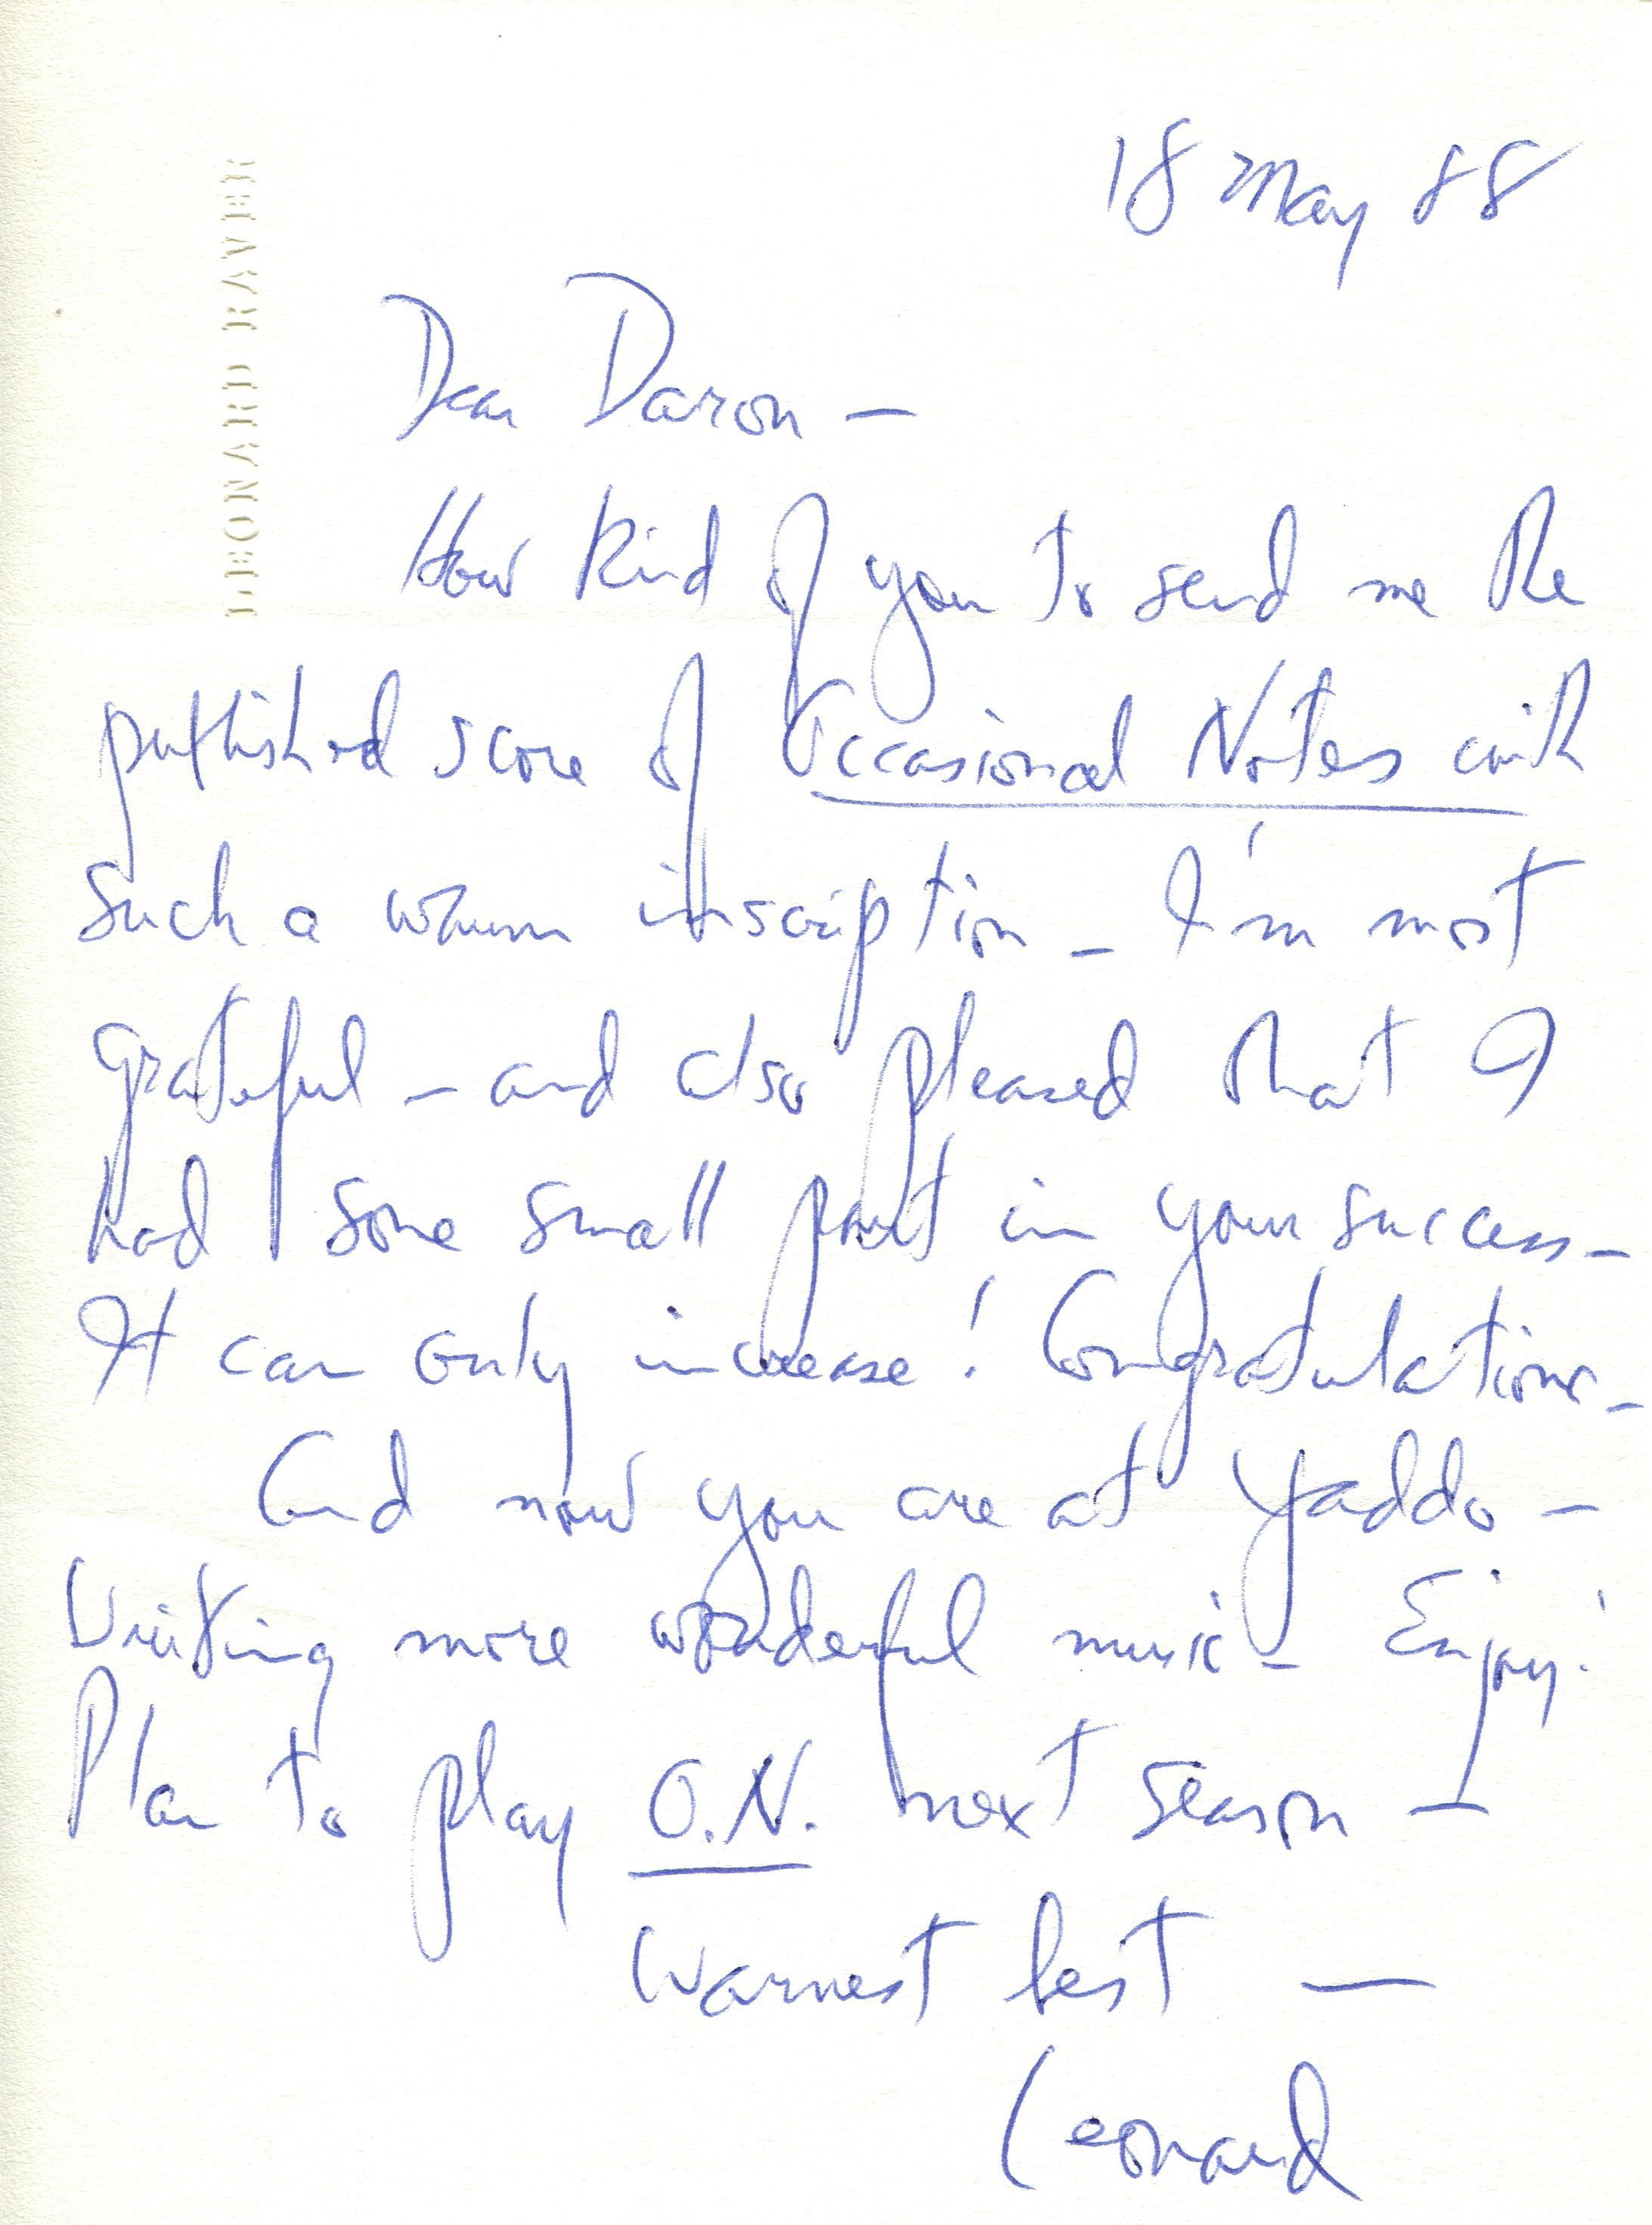 A letter from Leonard Raver to Daron about the suite, which he sent to Robert Schuneman at E.C. Schirmer with a letter urging Robert Schuneman to publish it. The piece became Hagen's first published work, and began a thirty-year relationship with Schuneman. Raver performed the piece relatively frequently over the ensuing years.